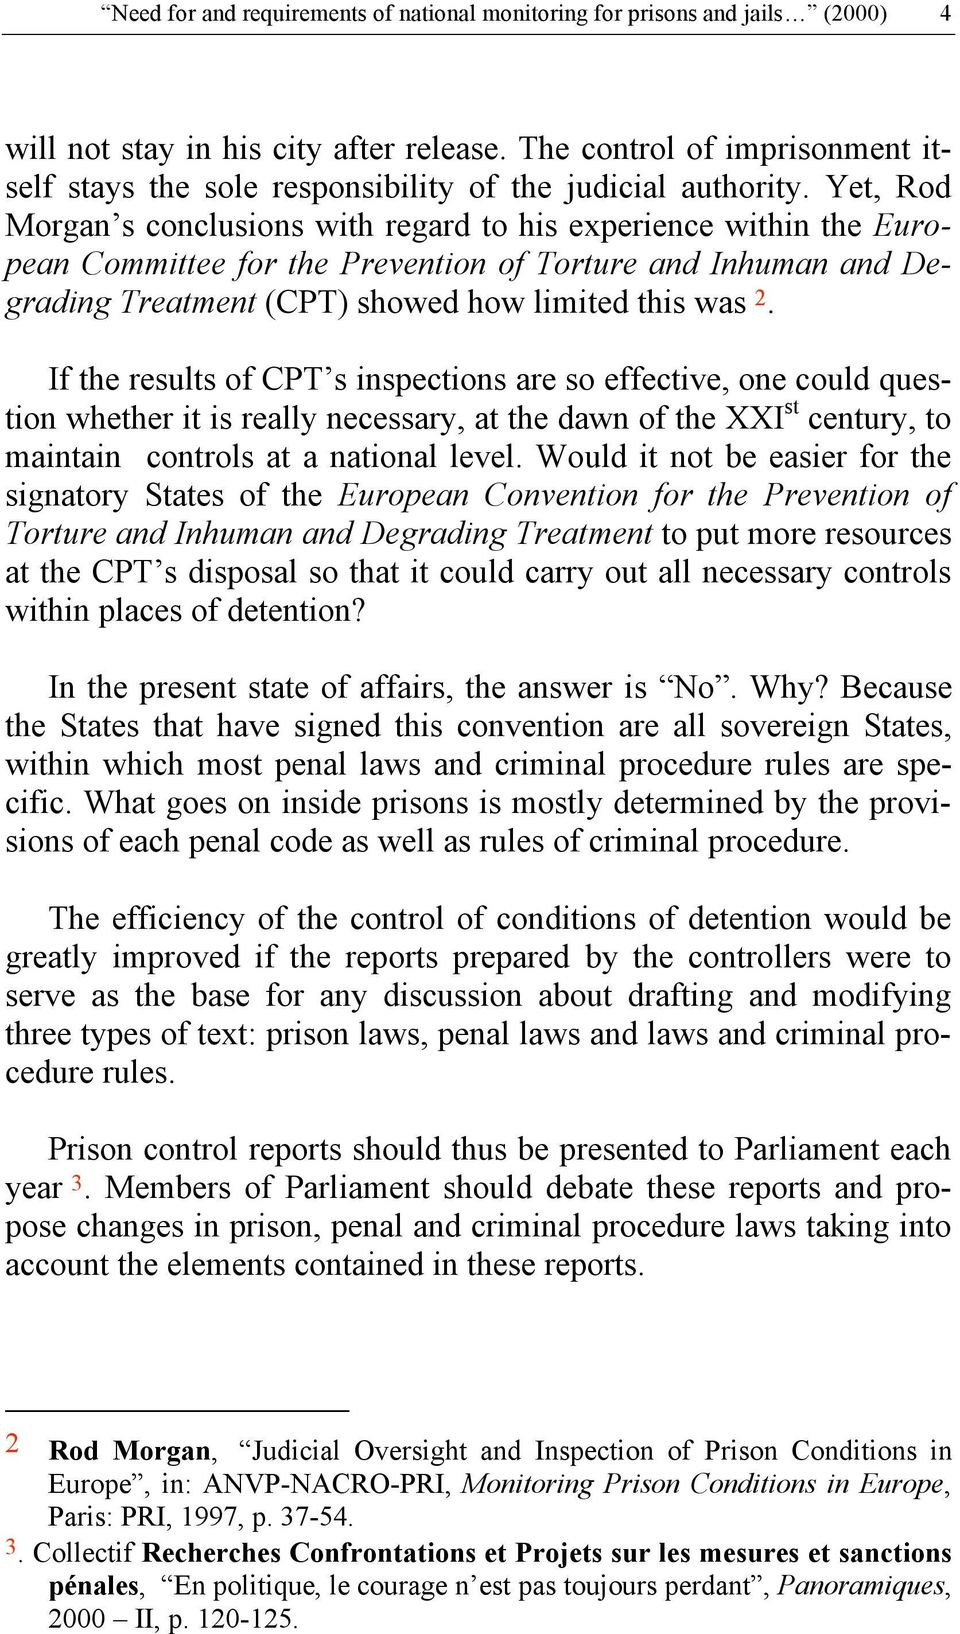 Yet, Rod Morgan s conclusions with regard to his experience within the European Committee for the Prevention of Torture and Inhuman and Degrading Treatment (CPT) showed how limited this was 2.